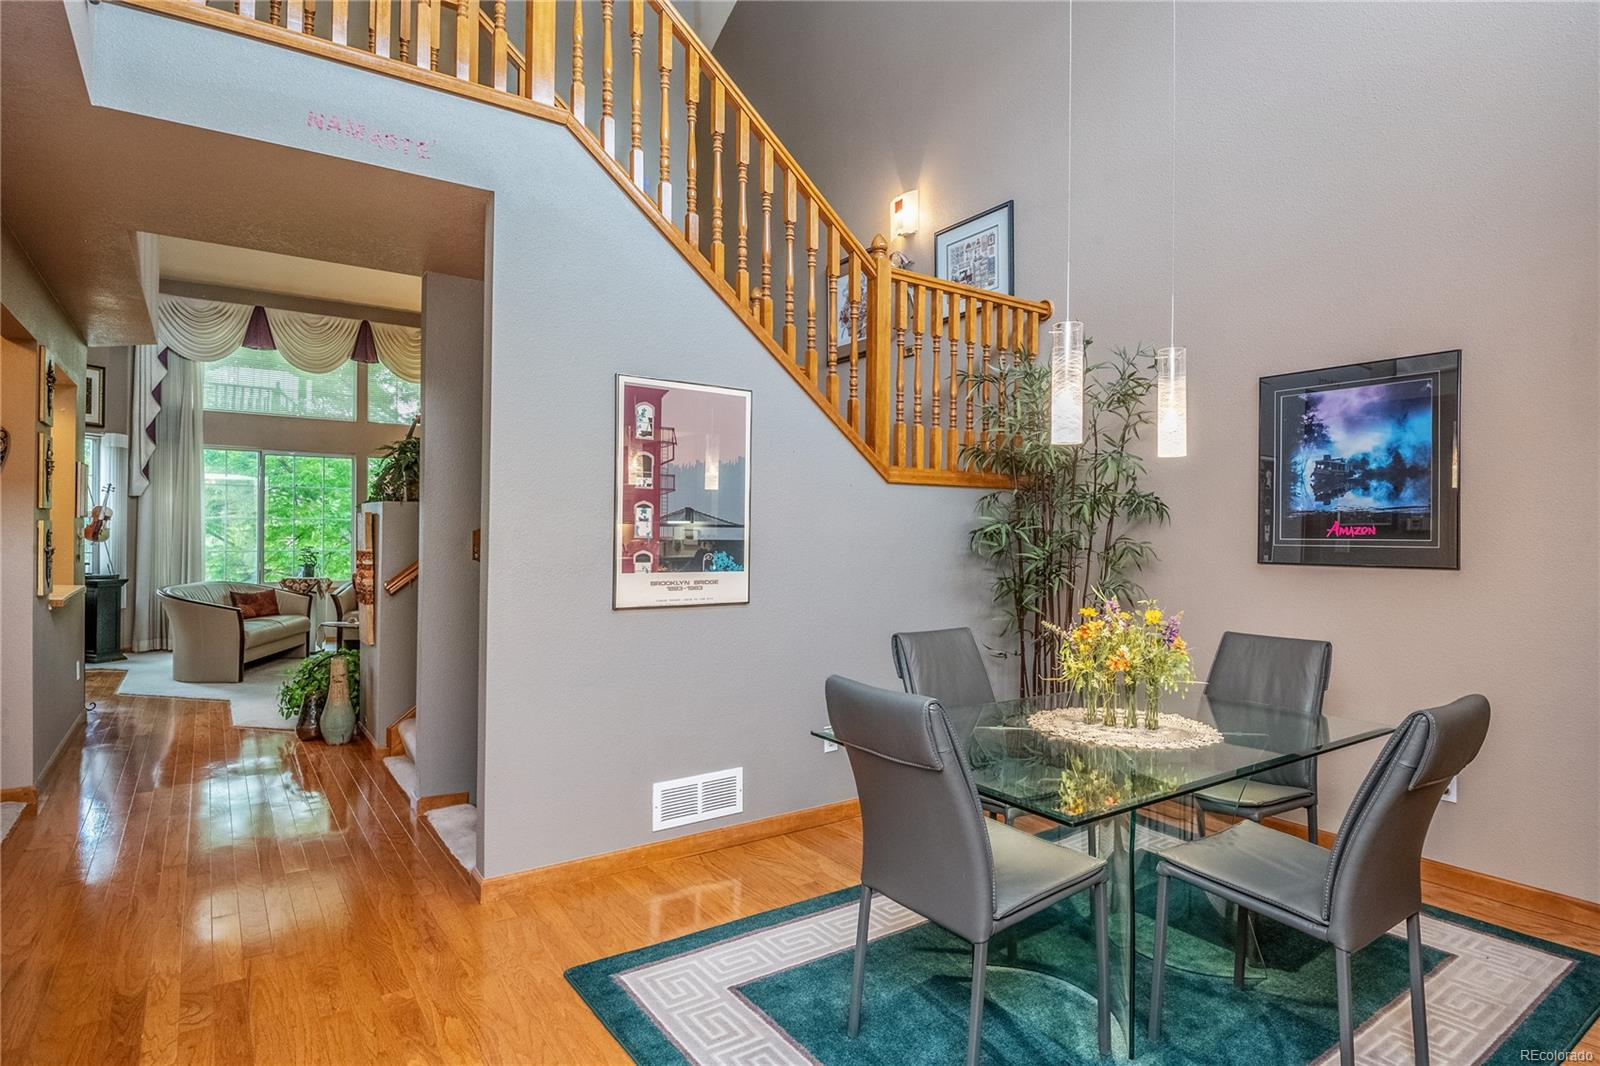 Family Room & Fireplace, Hallway to entrance, gorgeous wood floors, open & bright